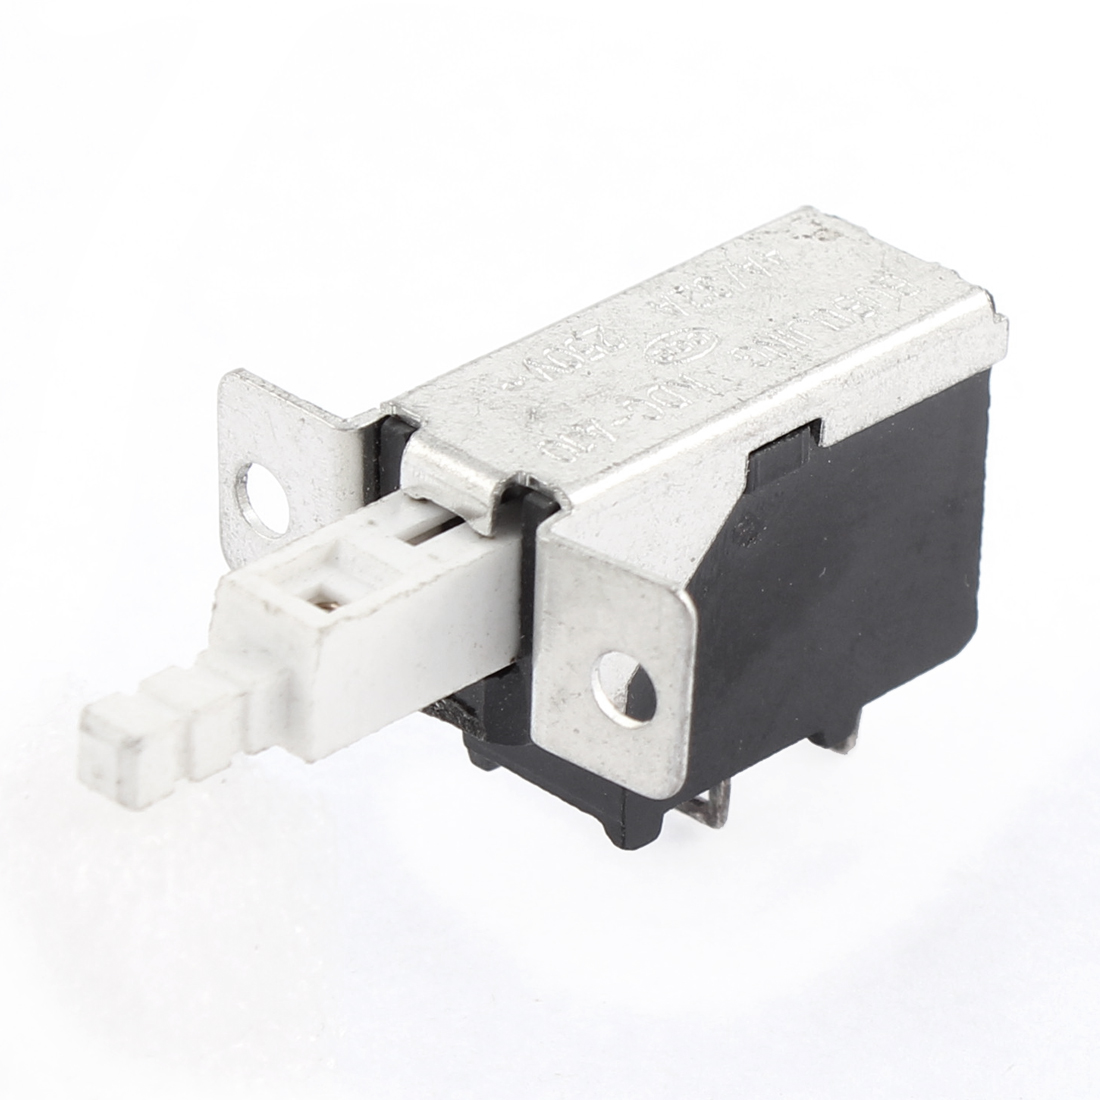 AC 250V 4A/32A SPST 2 Terminal Latching Unidirectional Push Button Switch